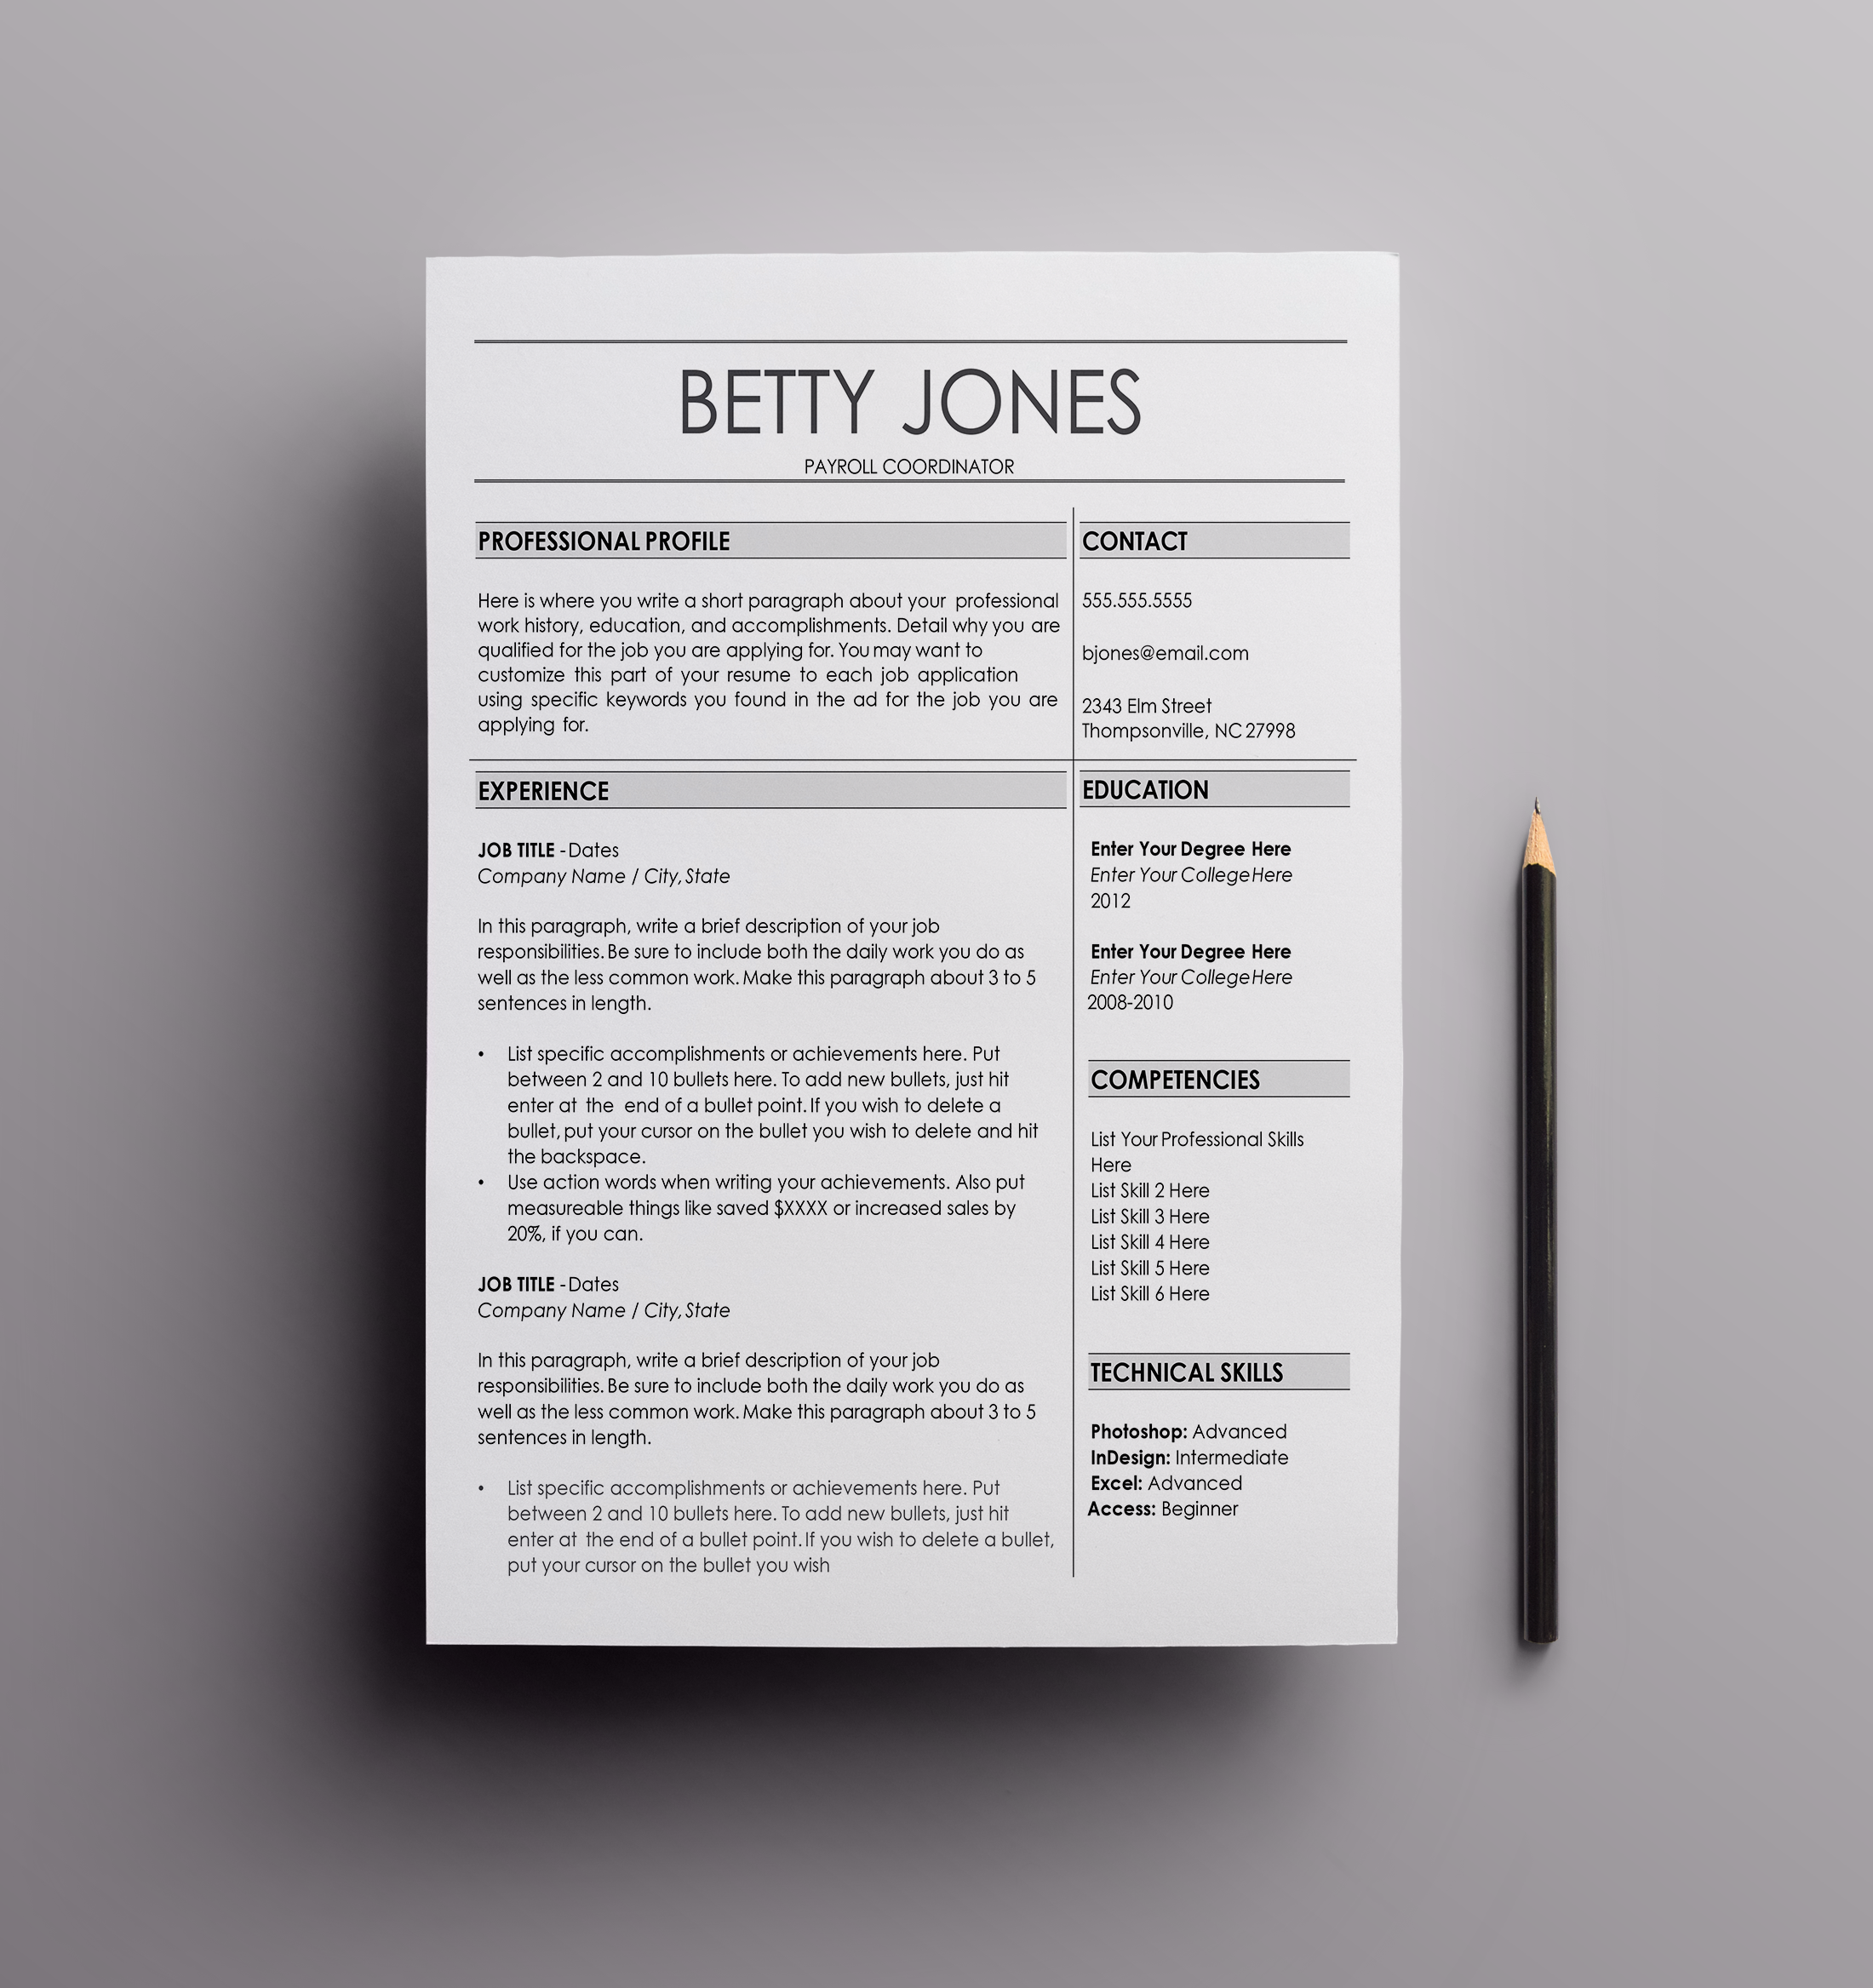 Resume Template   The Betty  resume design  cv template  curriculum     Resume Template   The Betty  resume design  cv template  curriculum vita  template